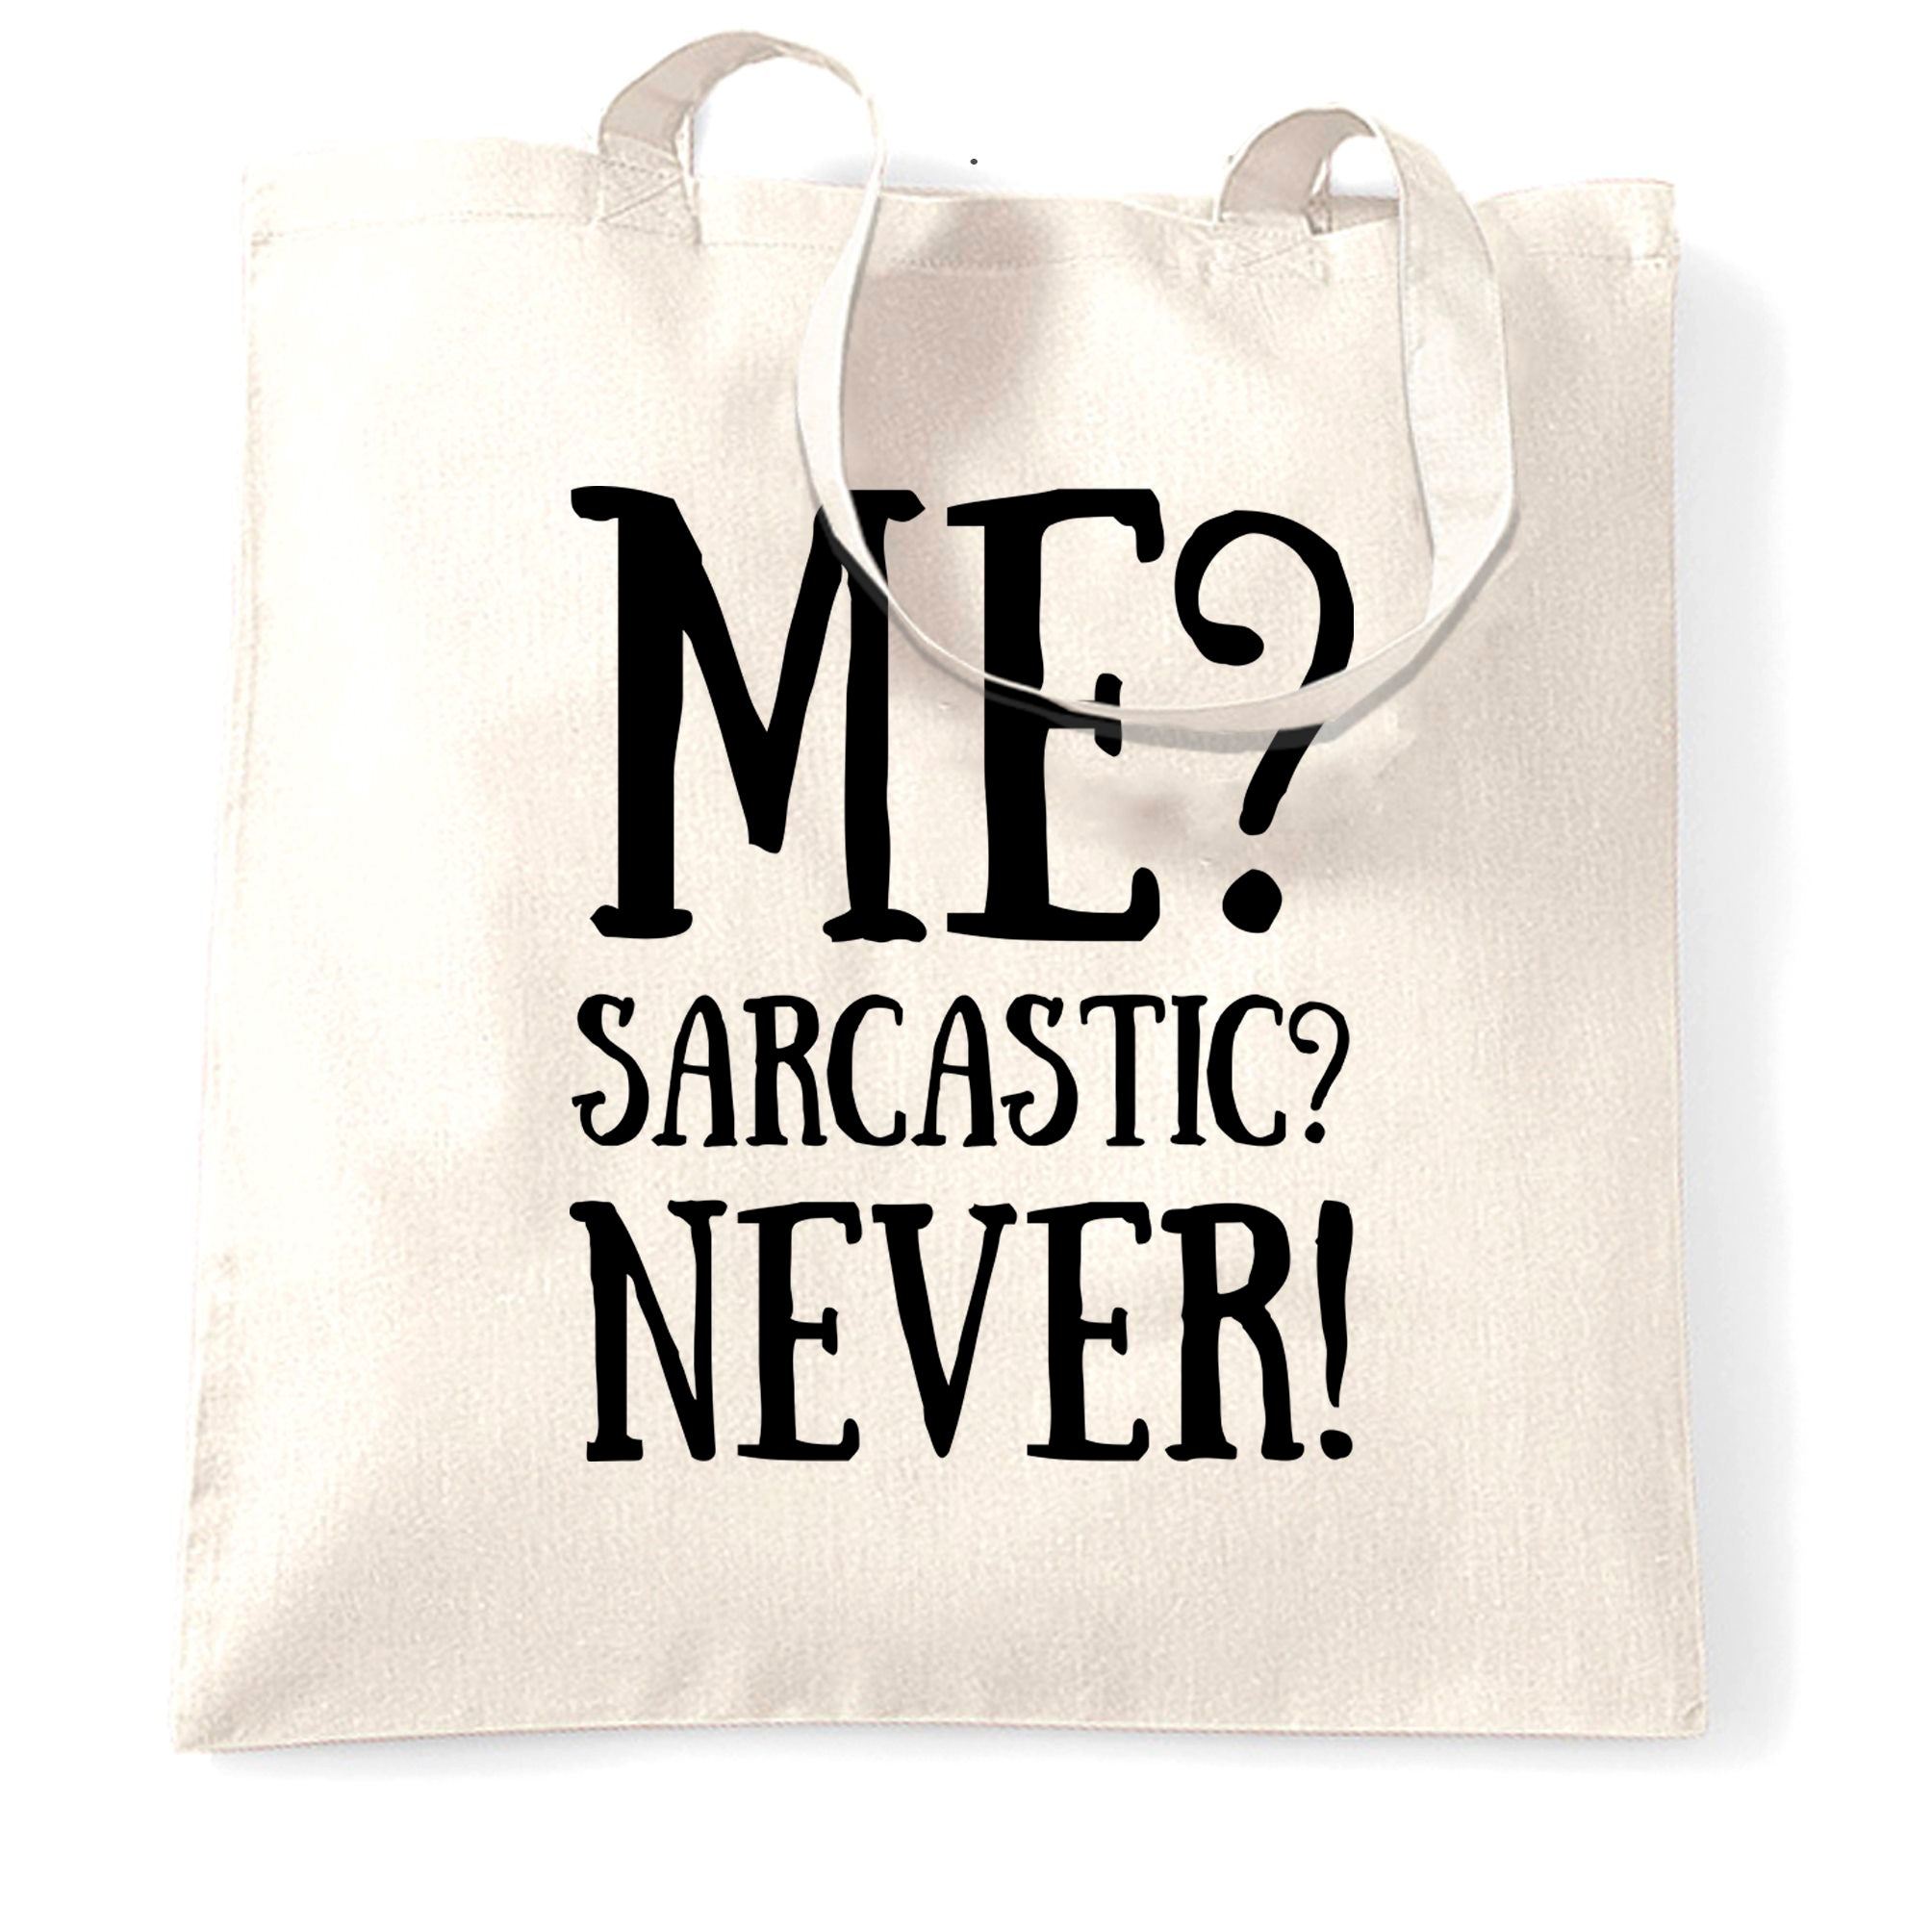 Novelty Sassy Tote Bag Me? Sarcastic? Never! Slogan